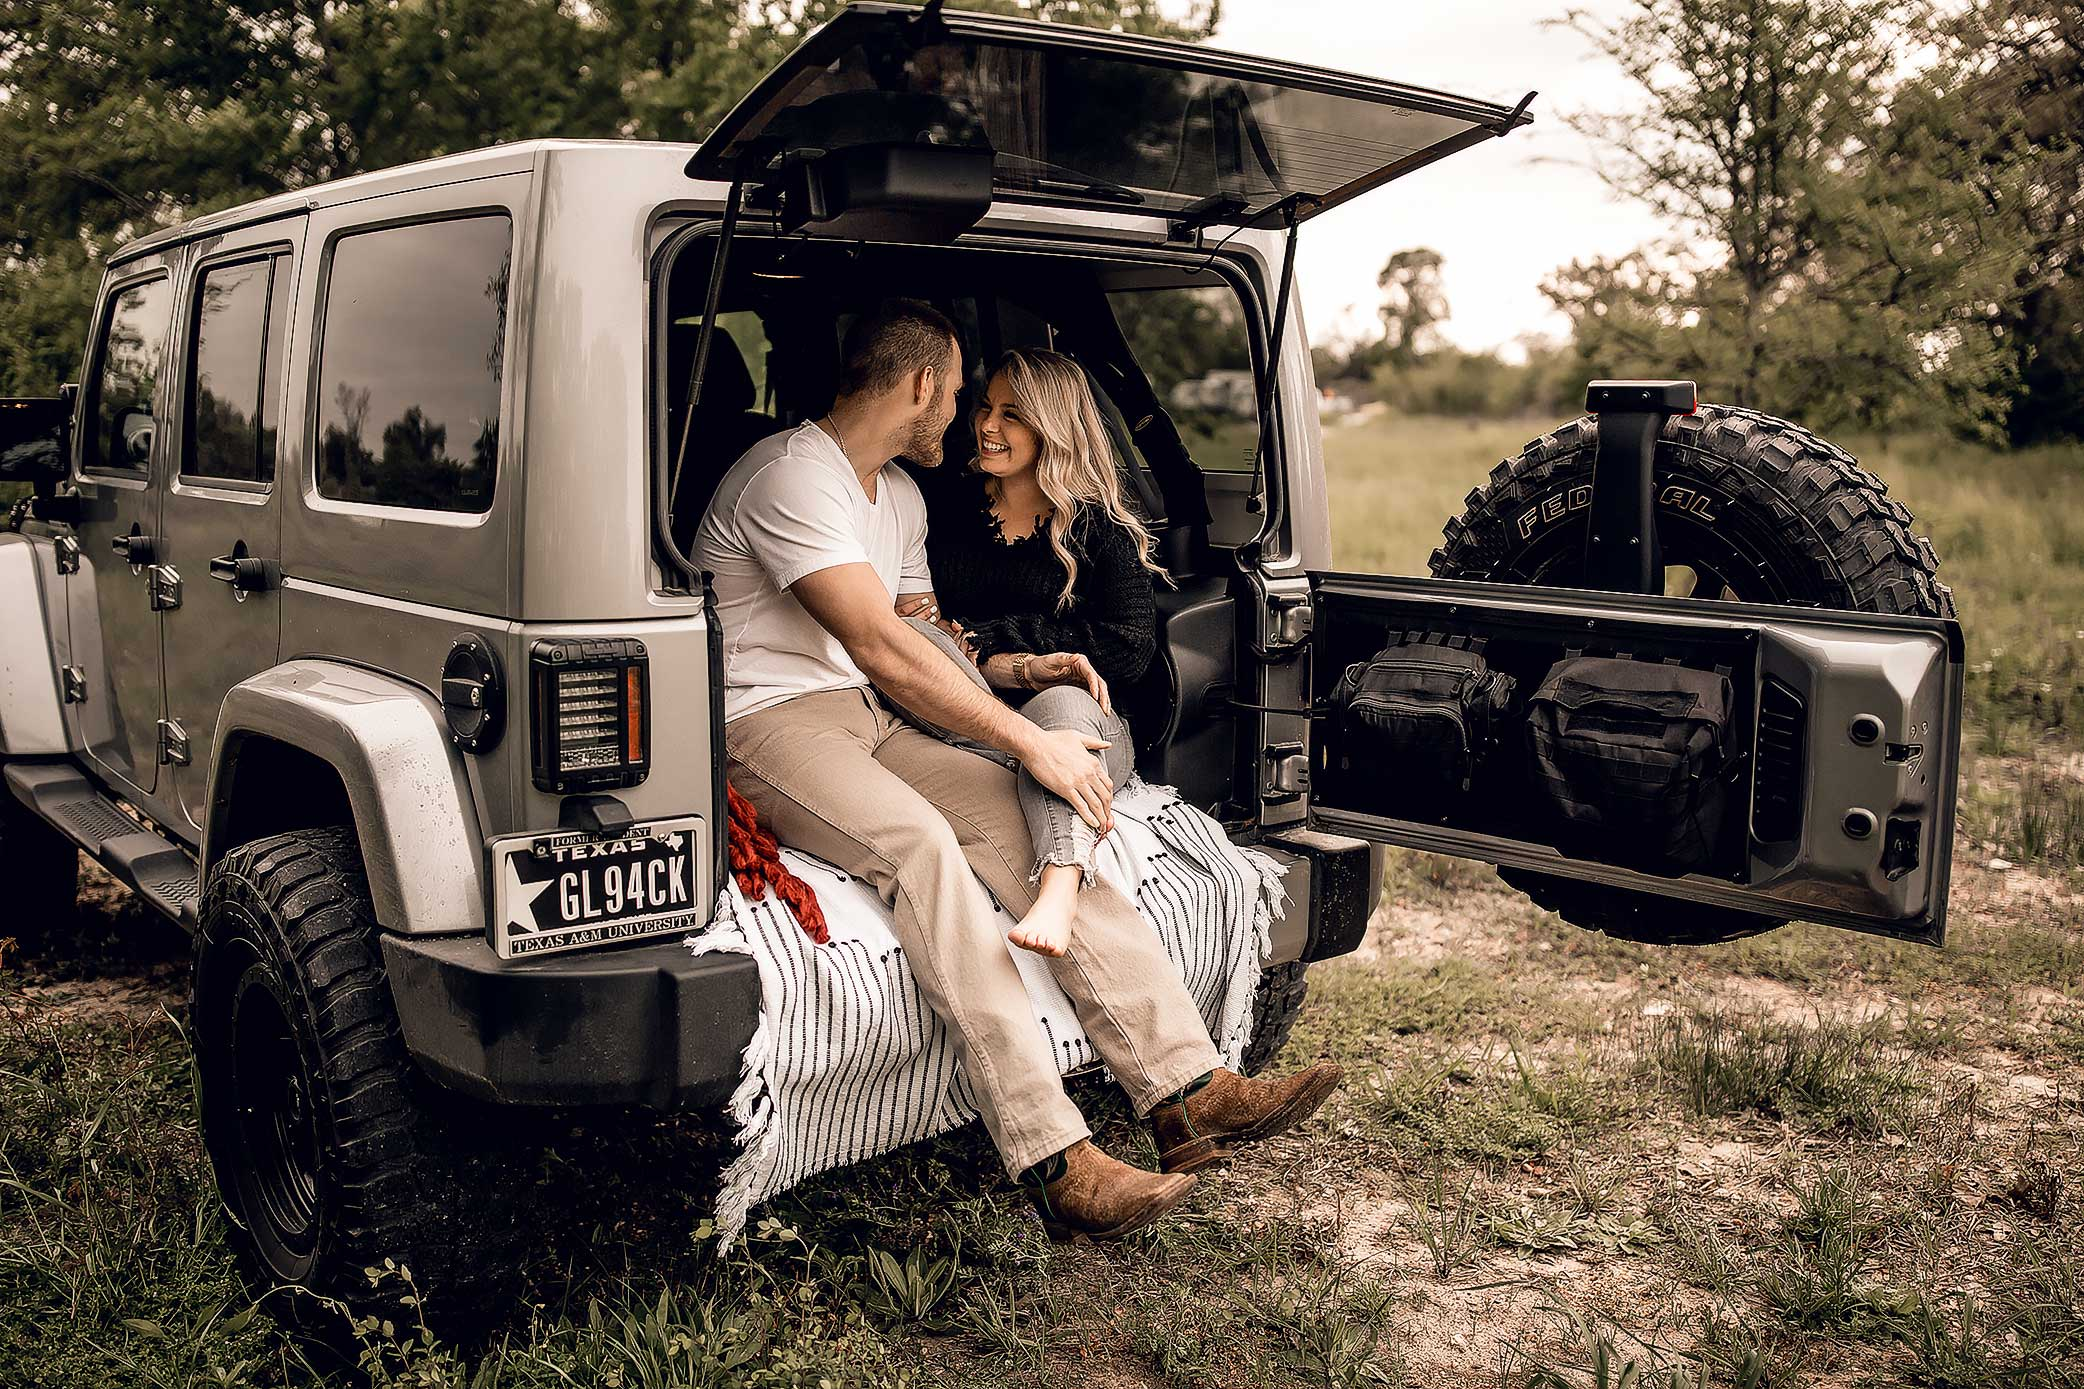 shelby-schiller-photography-couples-adventure-jeep-session.jpg